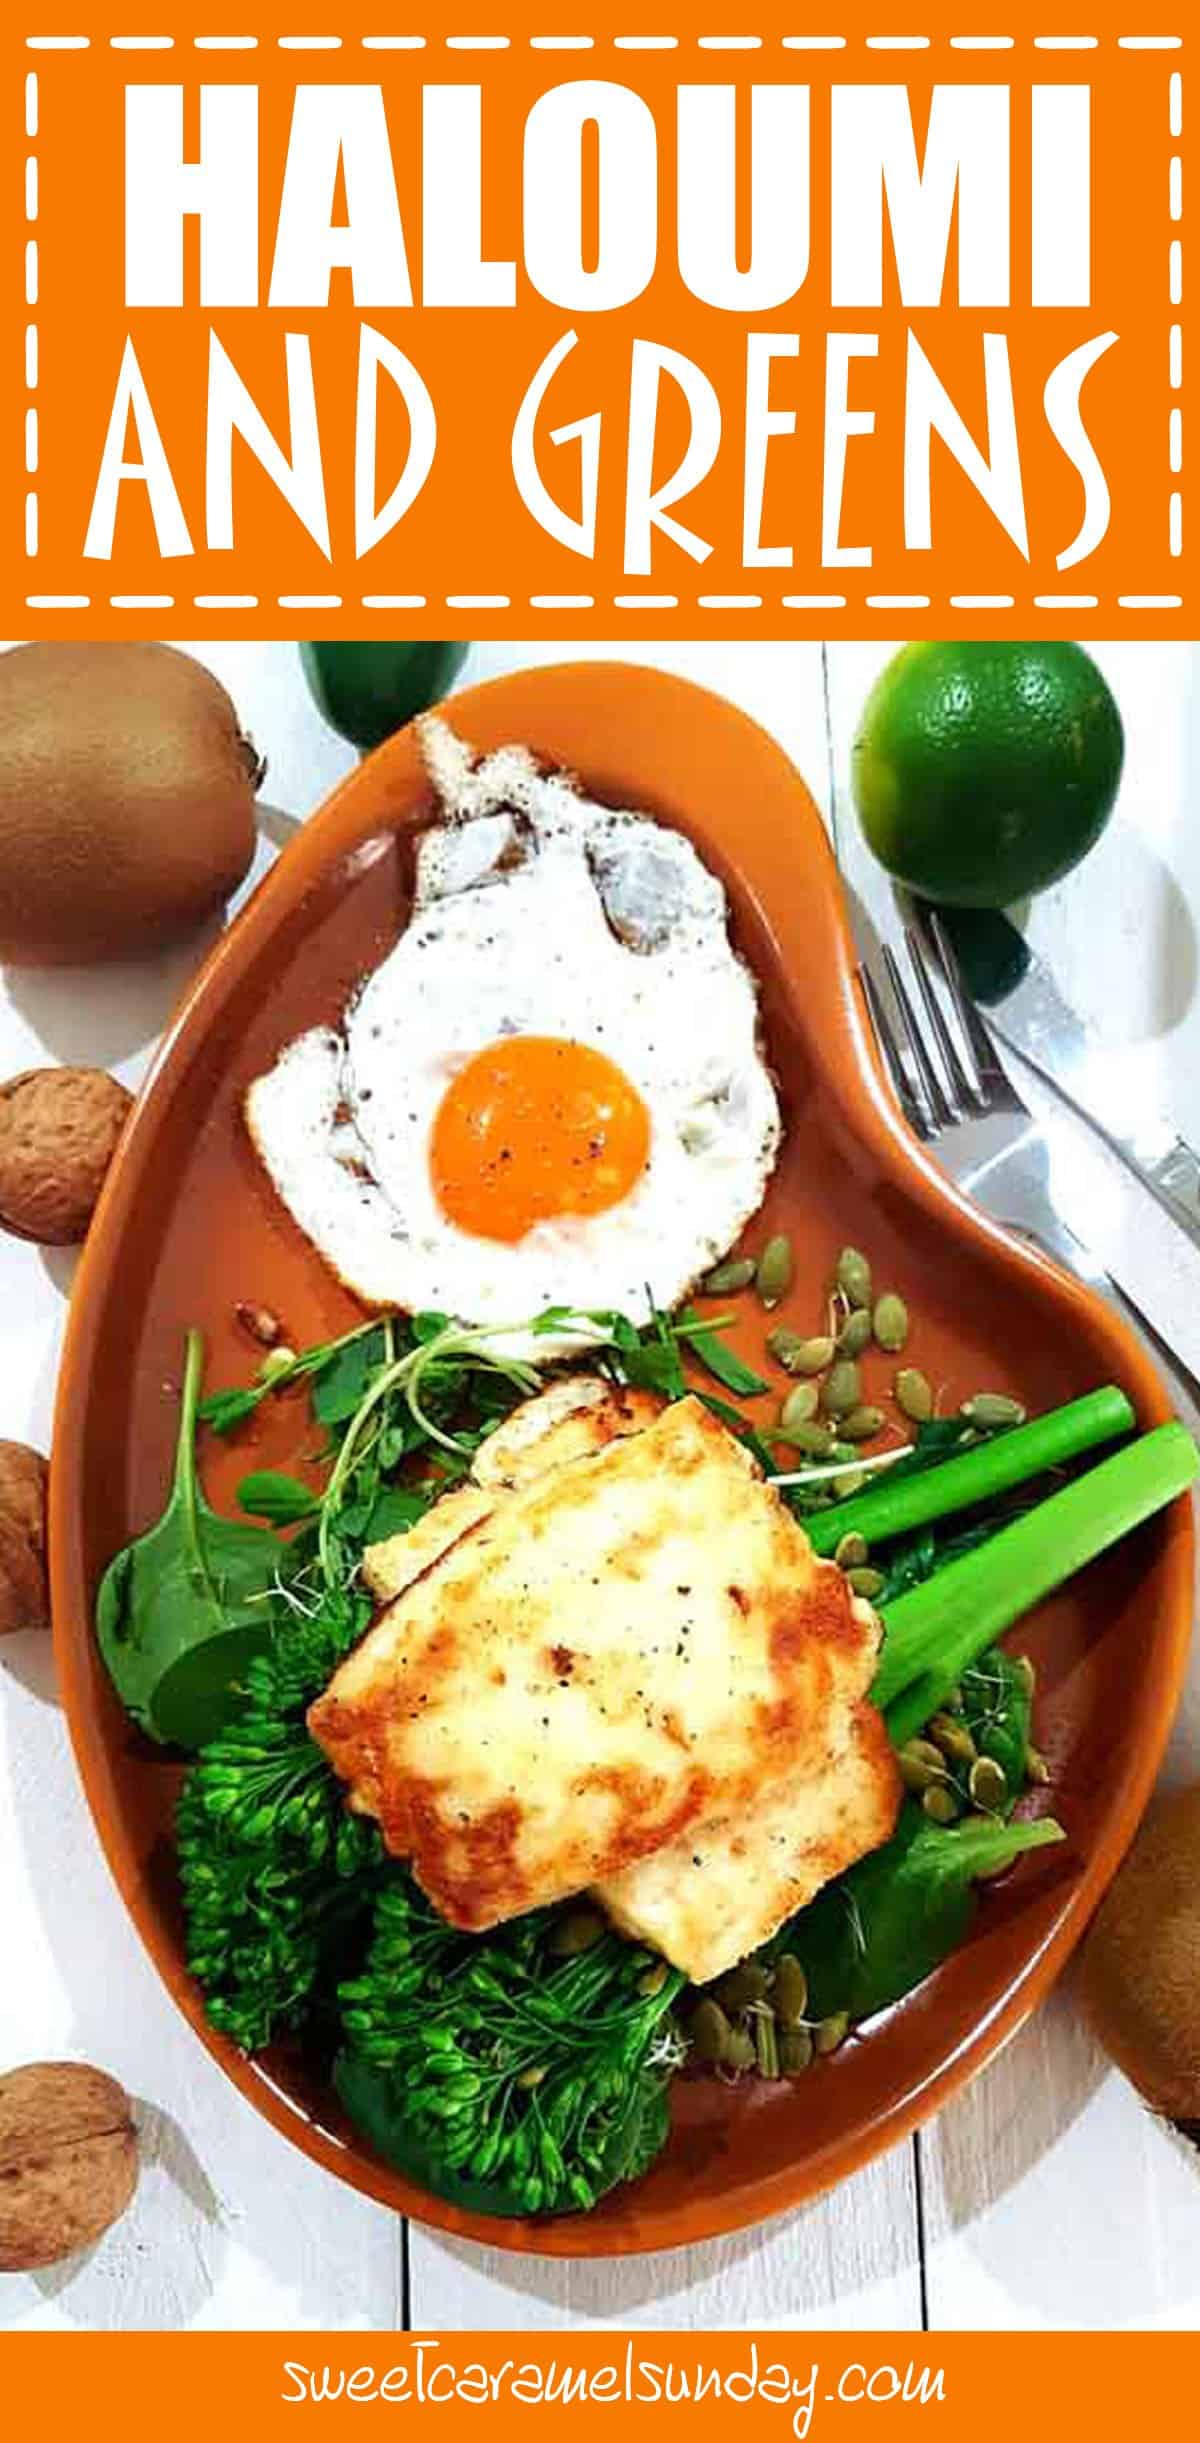 Haloumi and Greens with Fried Egg